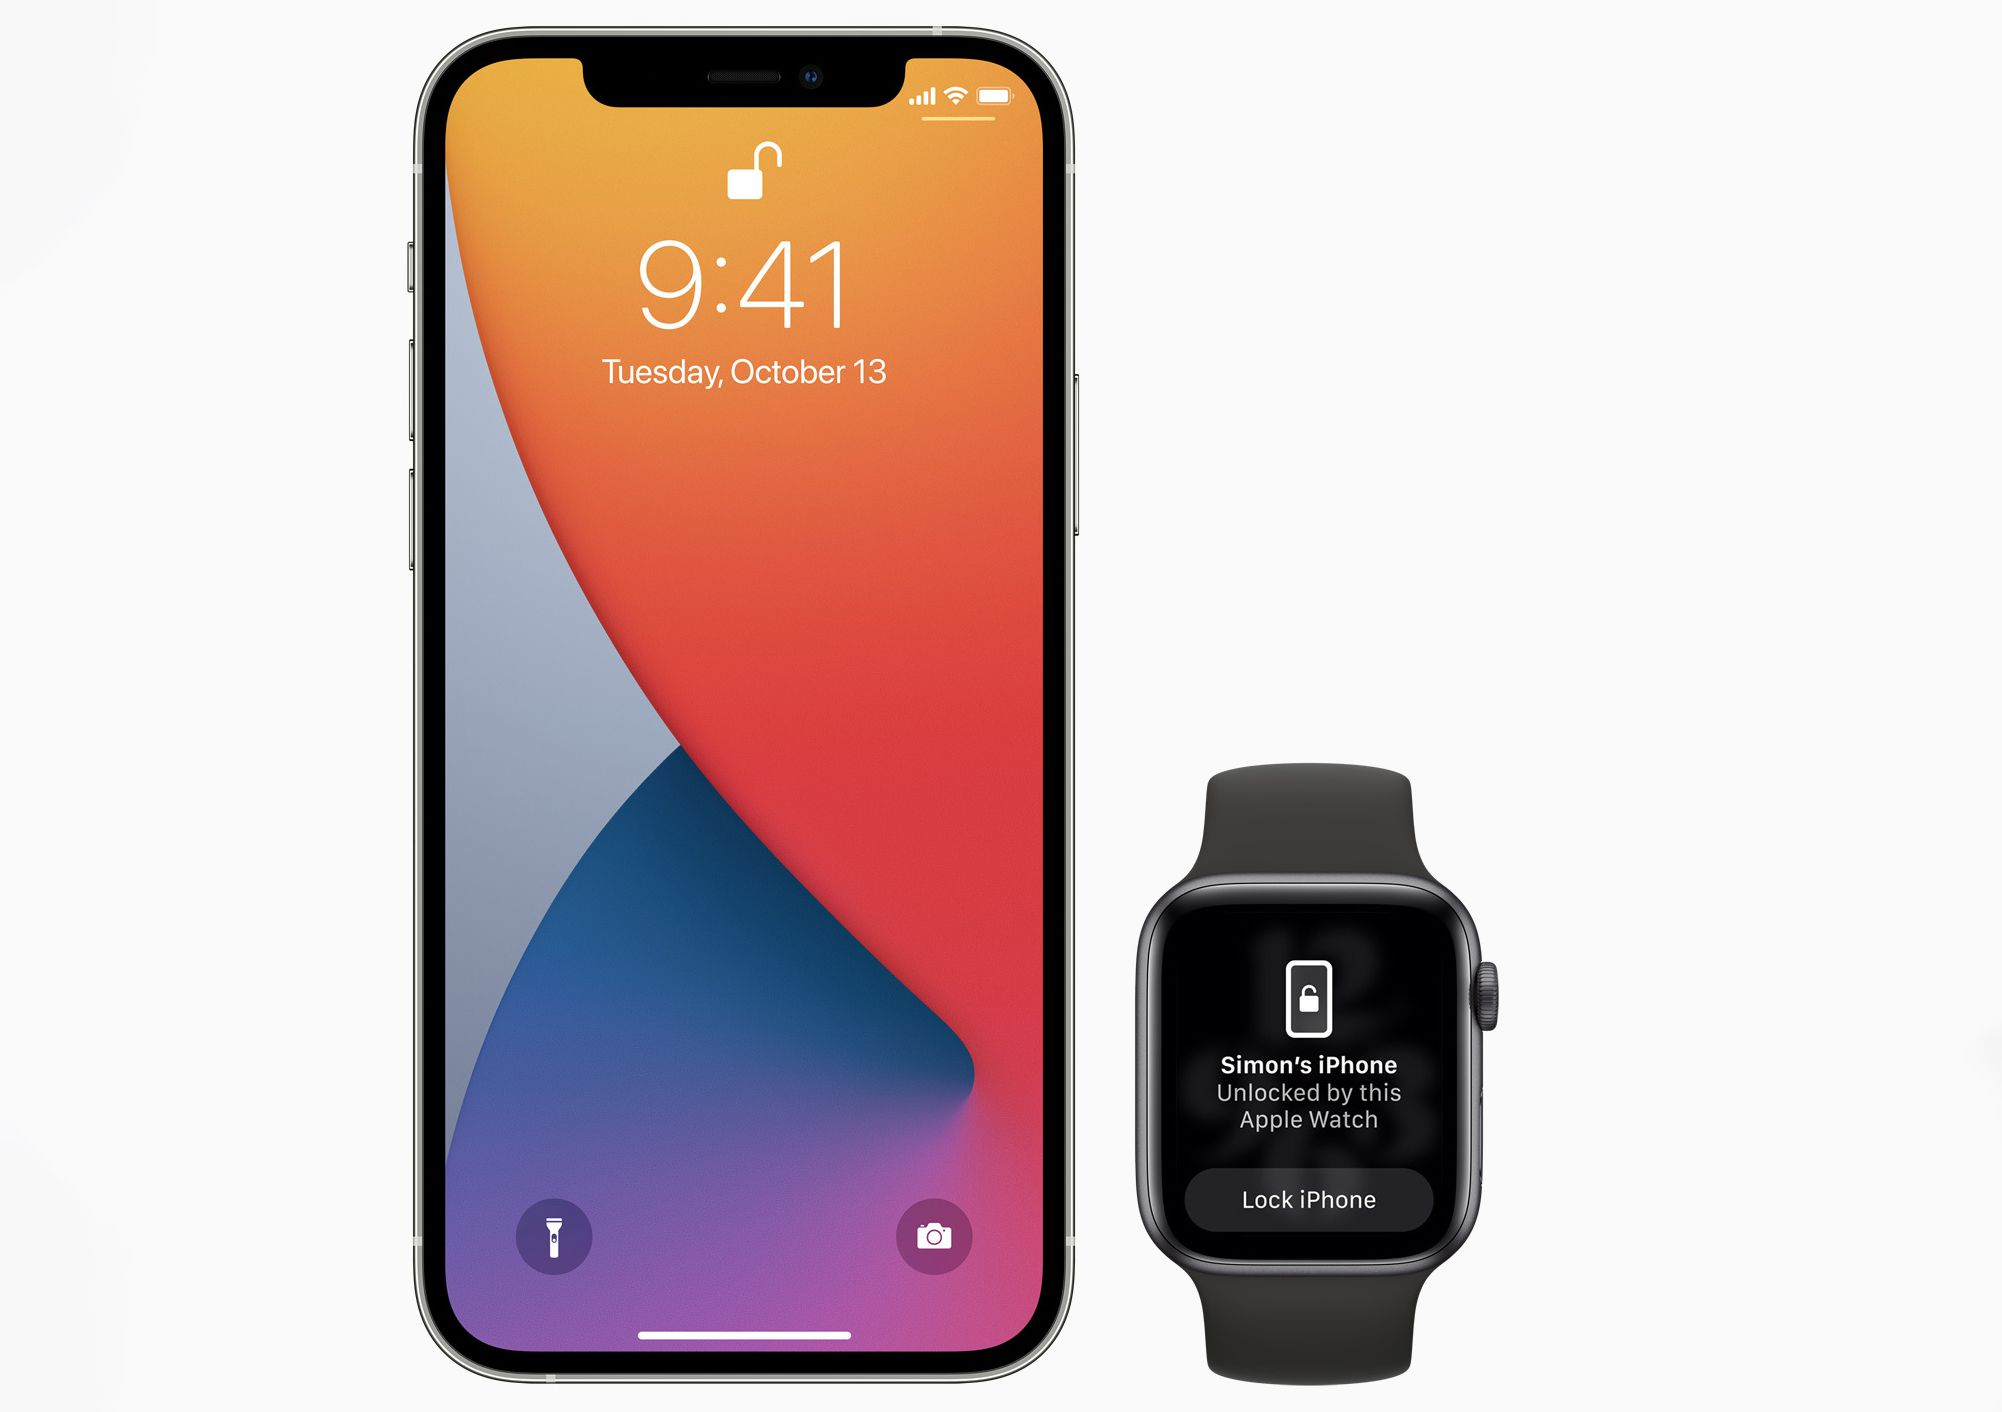 An iPhone and an Apple Watch demonstrating the unlock with watch feature used to unlock an iPhone while wearing a mask.